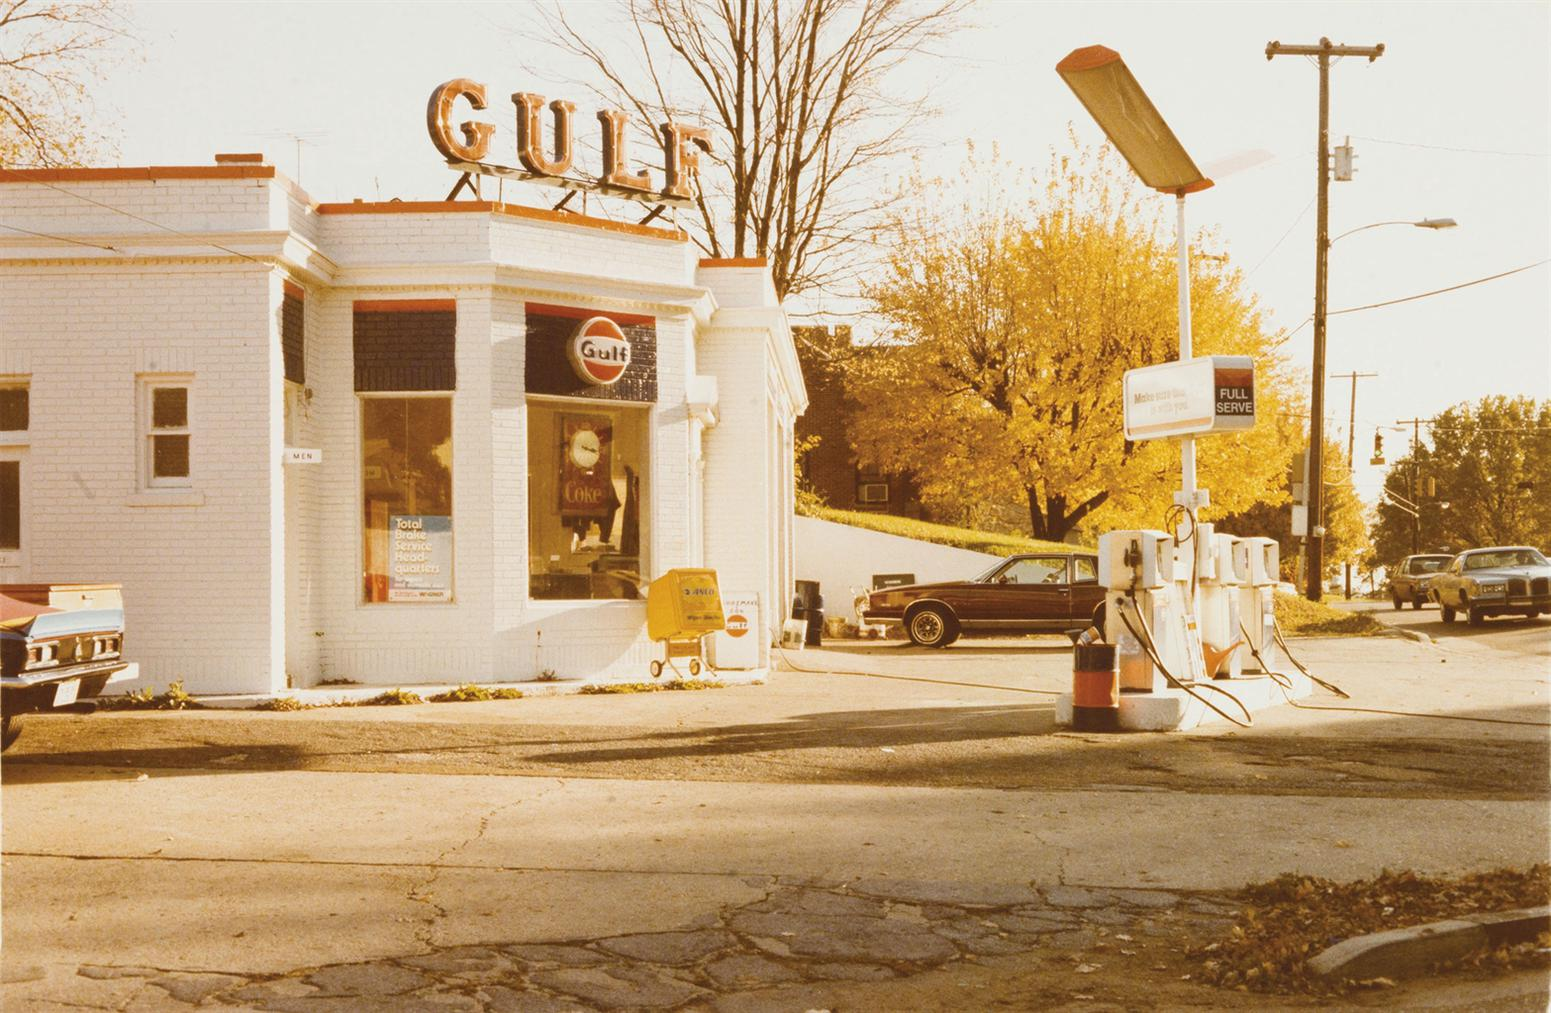 William Eggleston-Untitled (Gulf), 1970s-